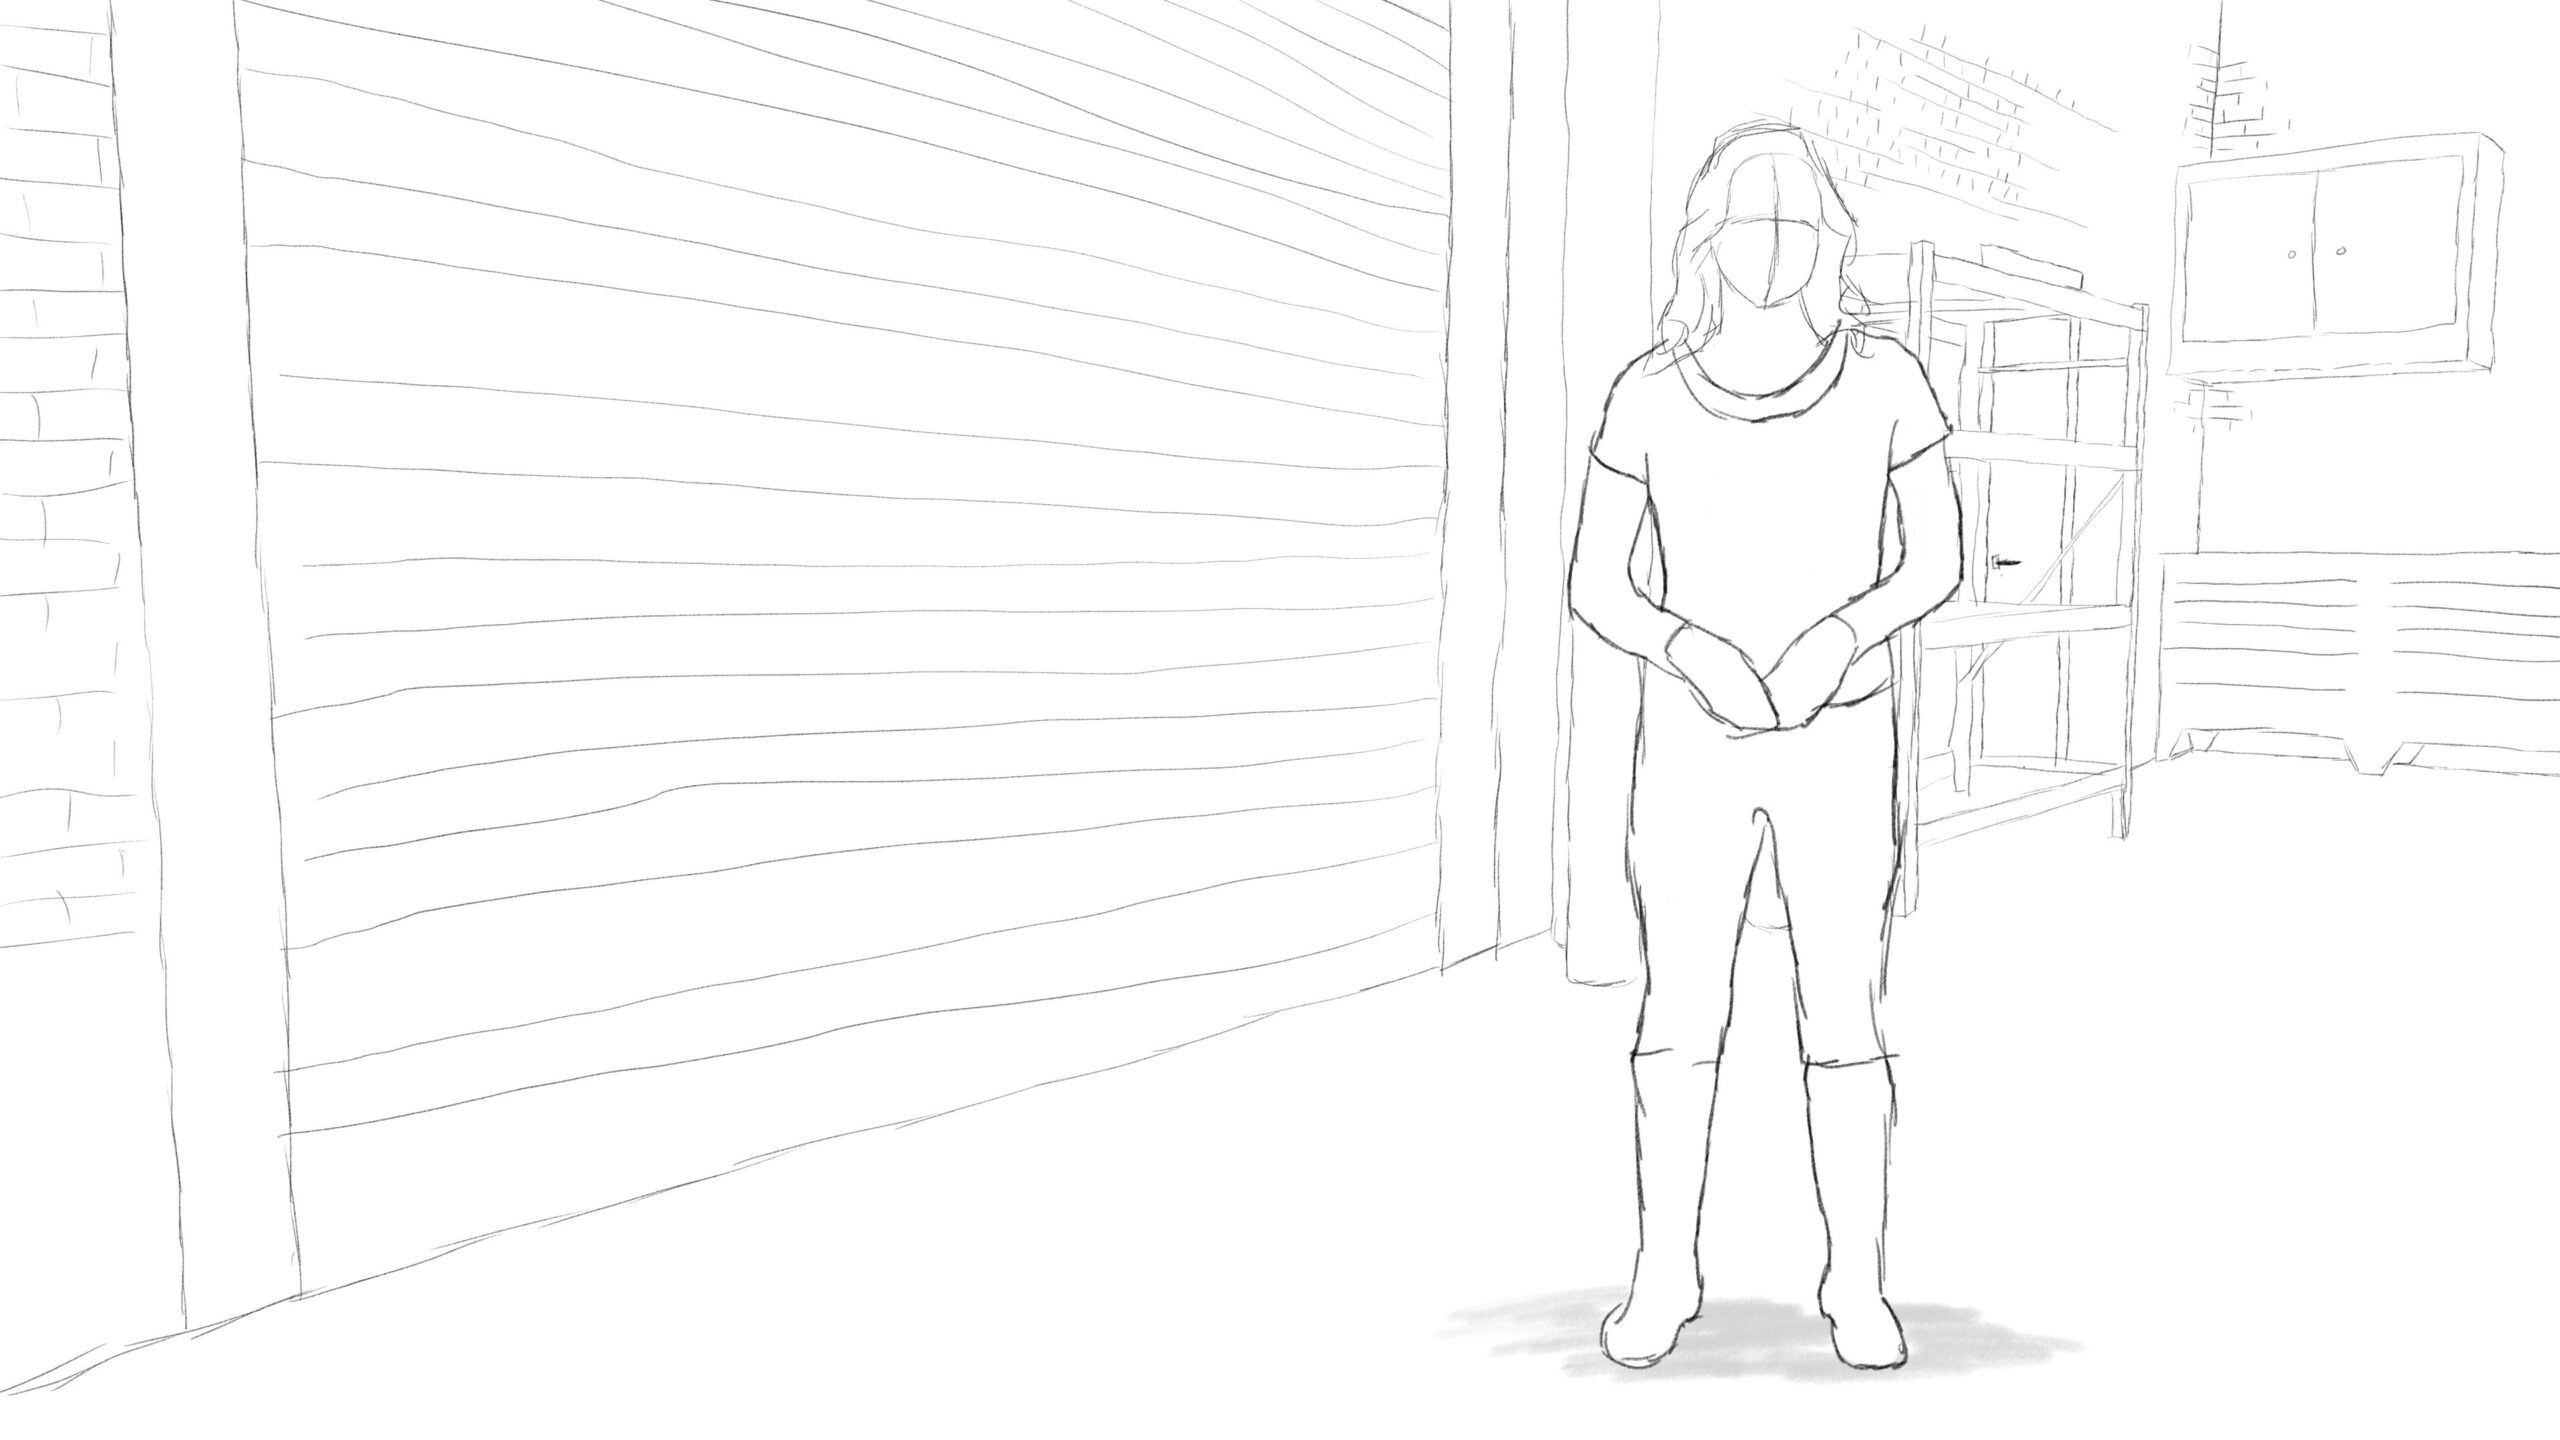 Pitney Bowes-RumbleOn concept art - wide-view drawing of garage door with person in front